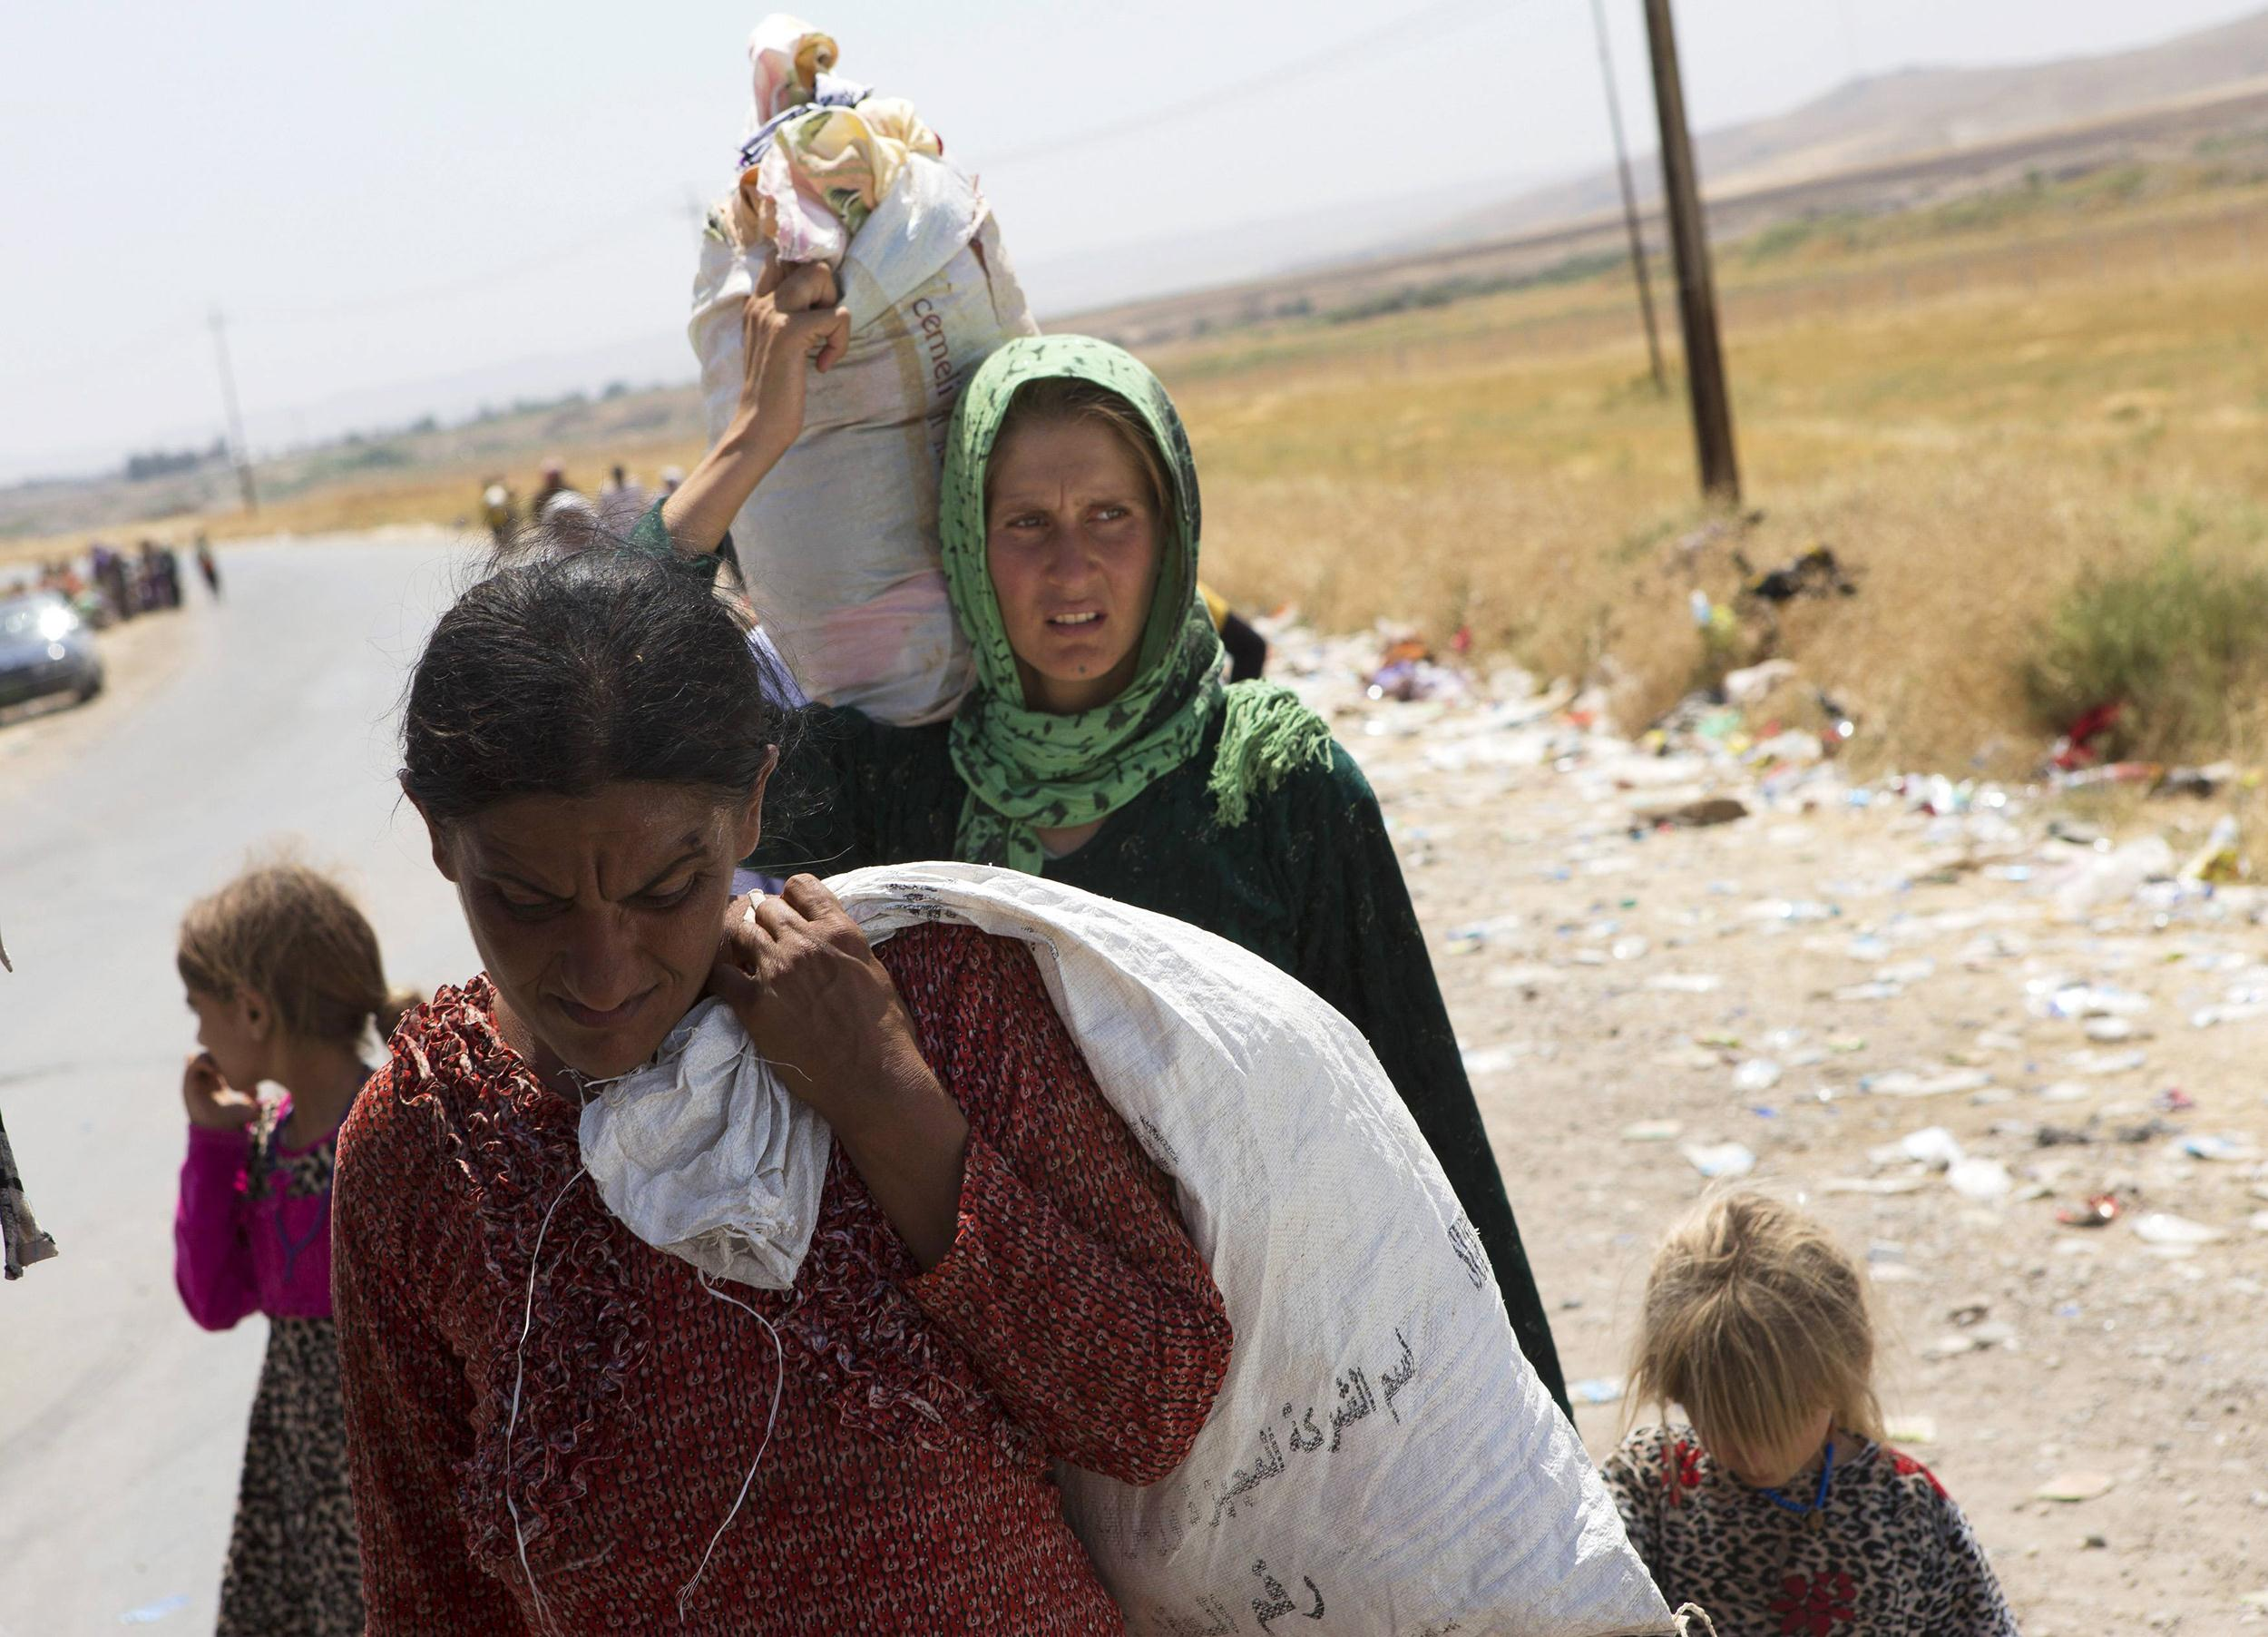 Image: Displaced people from the minority Yazidi sect, fleeing the violence in the Iraqi town of Sinjar, re-enter Iraq from Syria at the Iraqi-Syrian border crossing in Fishkhabour